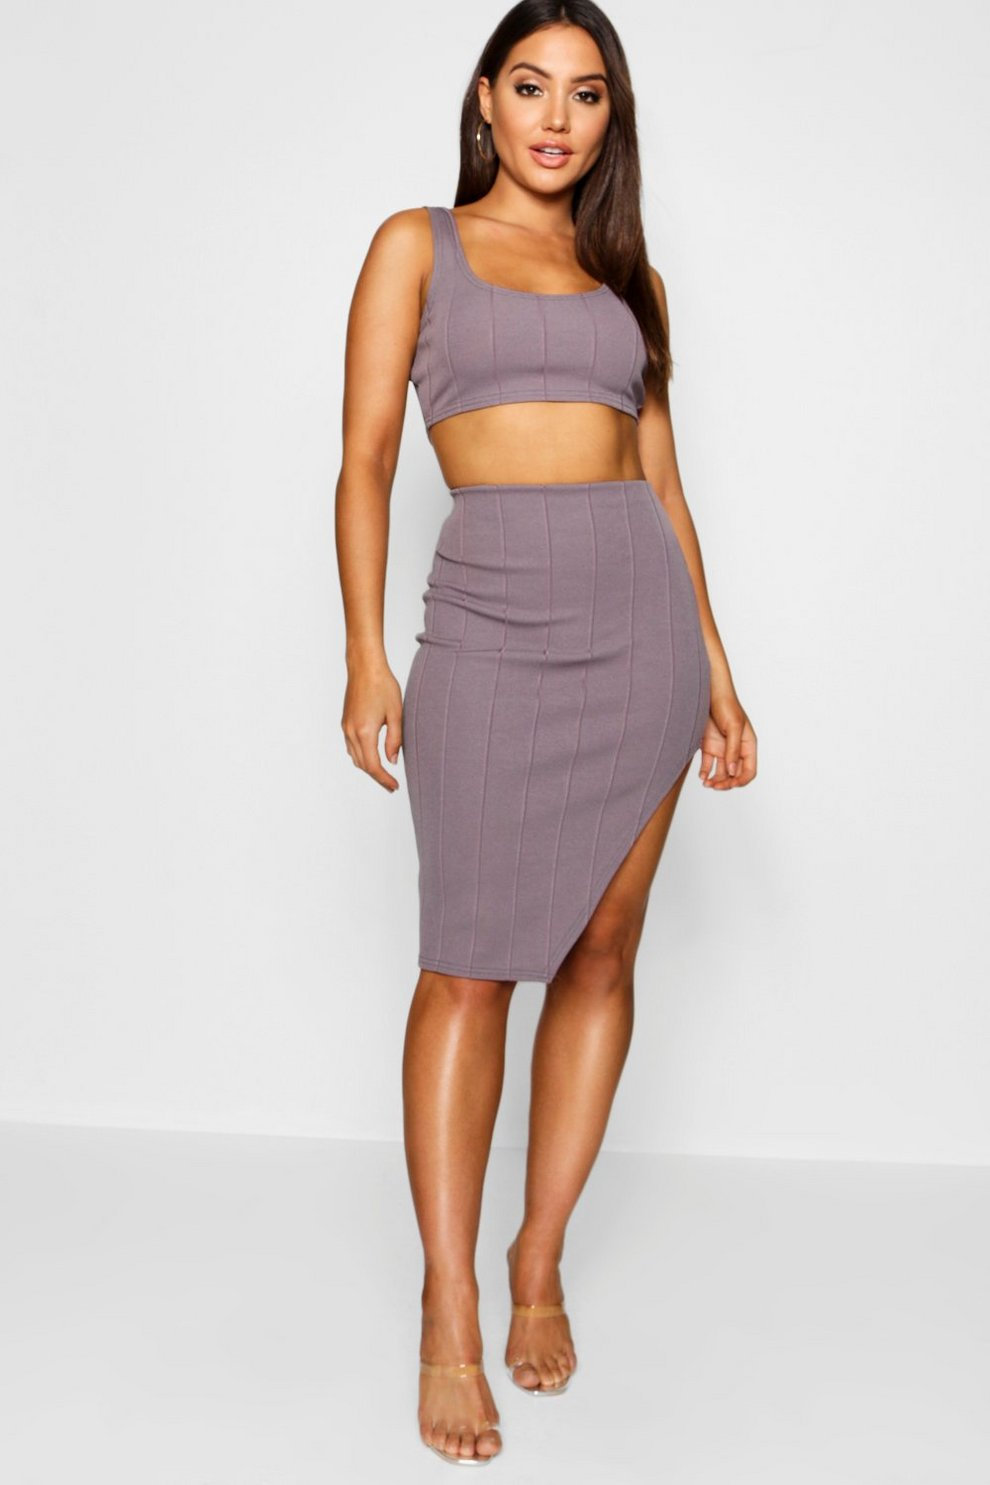 4d28aa82a1a3 Plus Size Midi Skirt And Crop Top